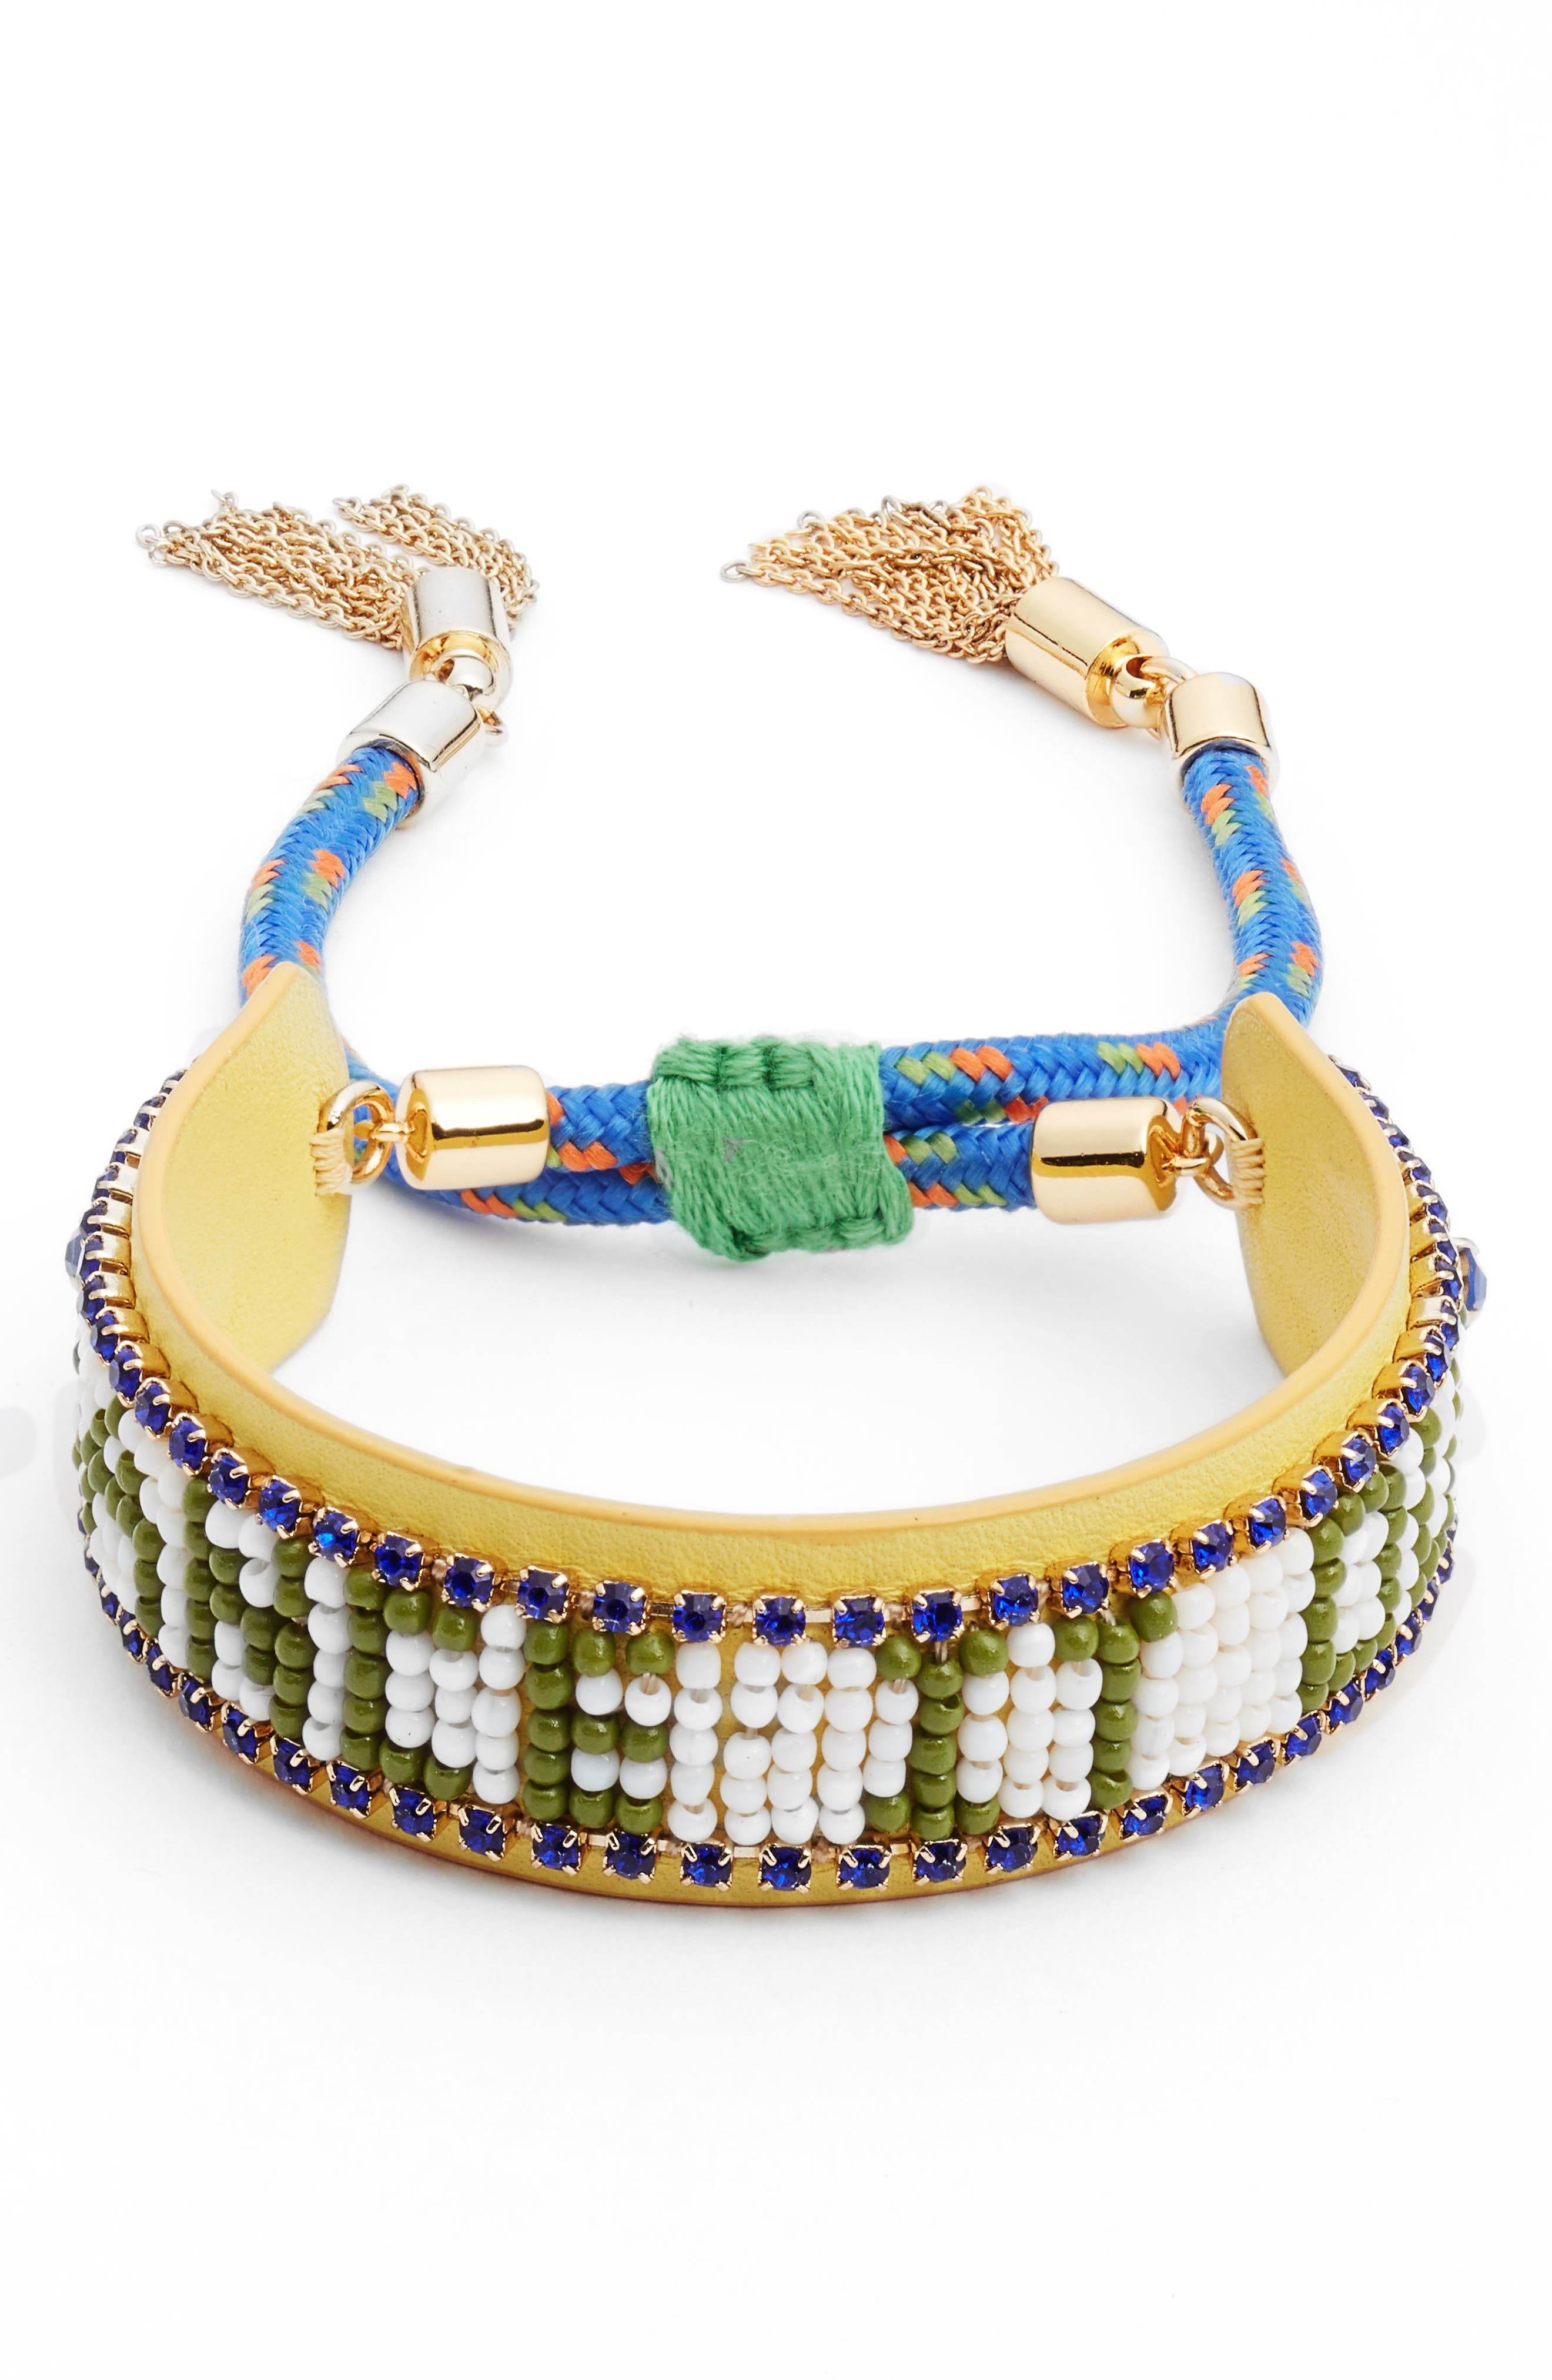 Dance It Out Seed Bead Bracelet,                             Main thumbnail 1, color,                             YELLOW MULTI